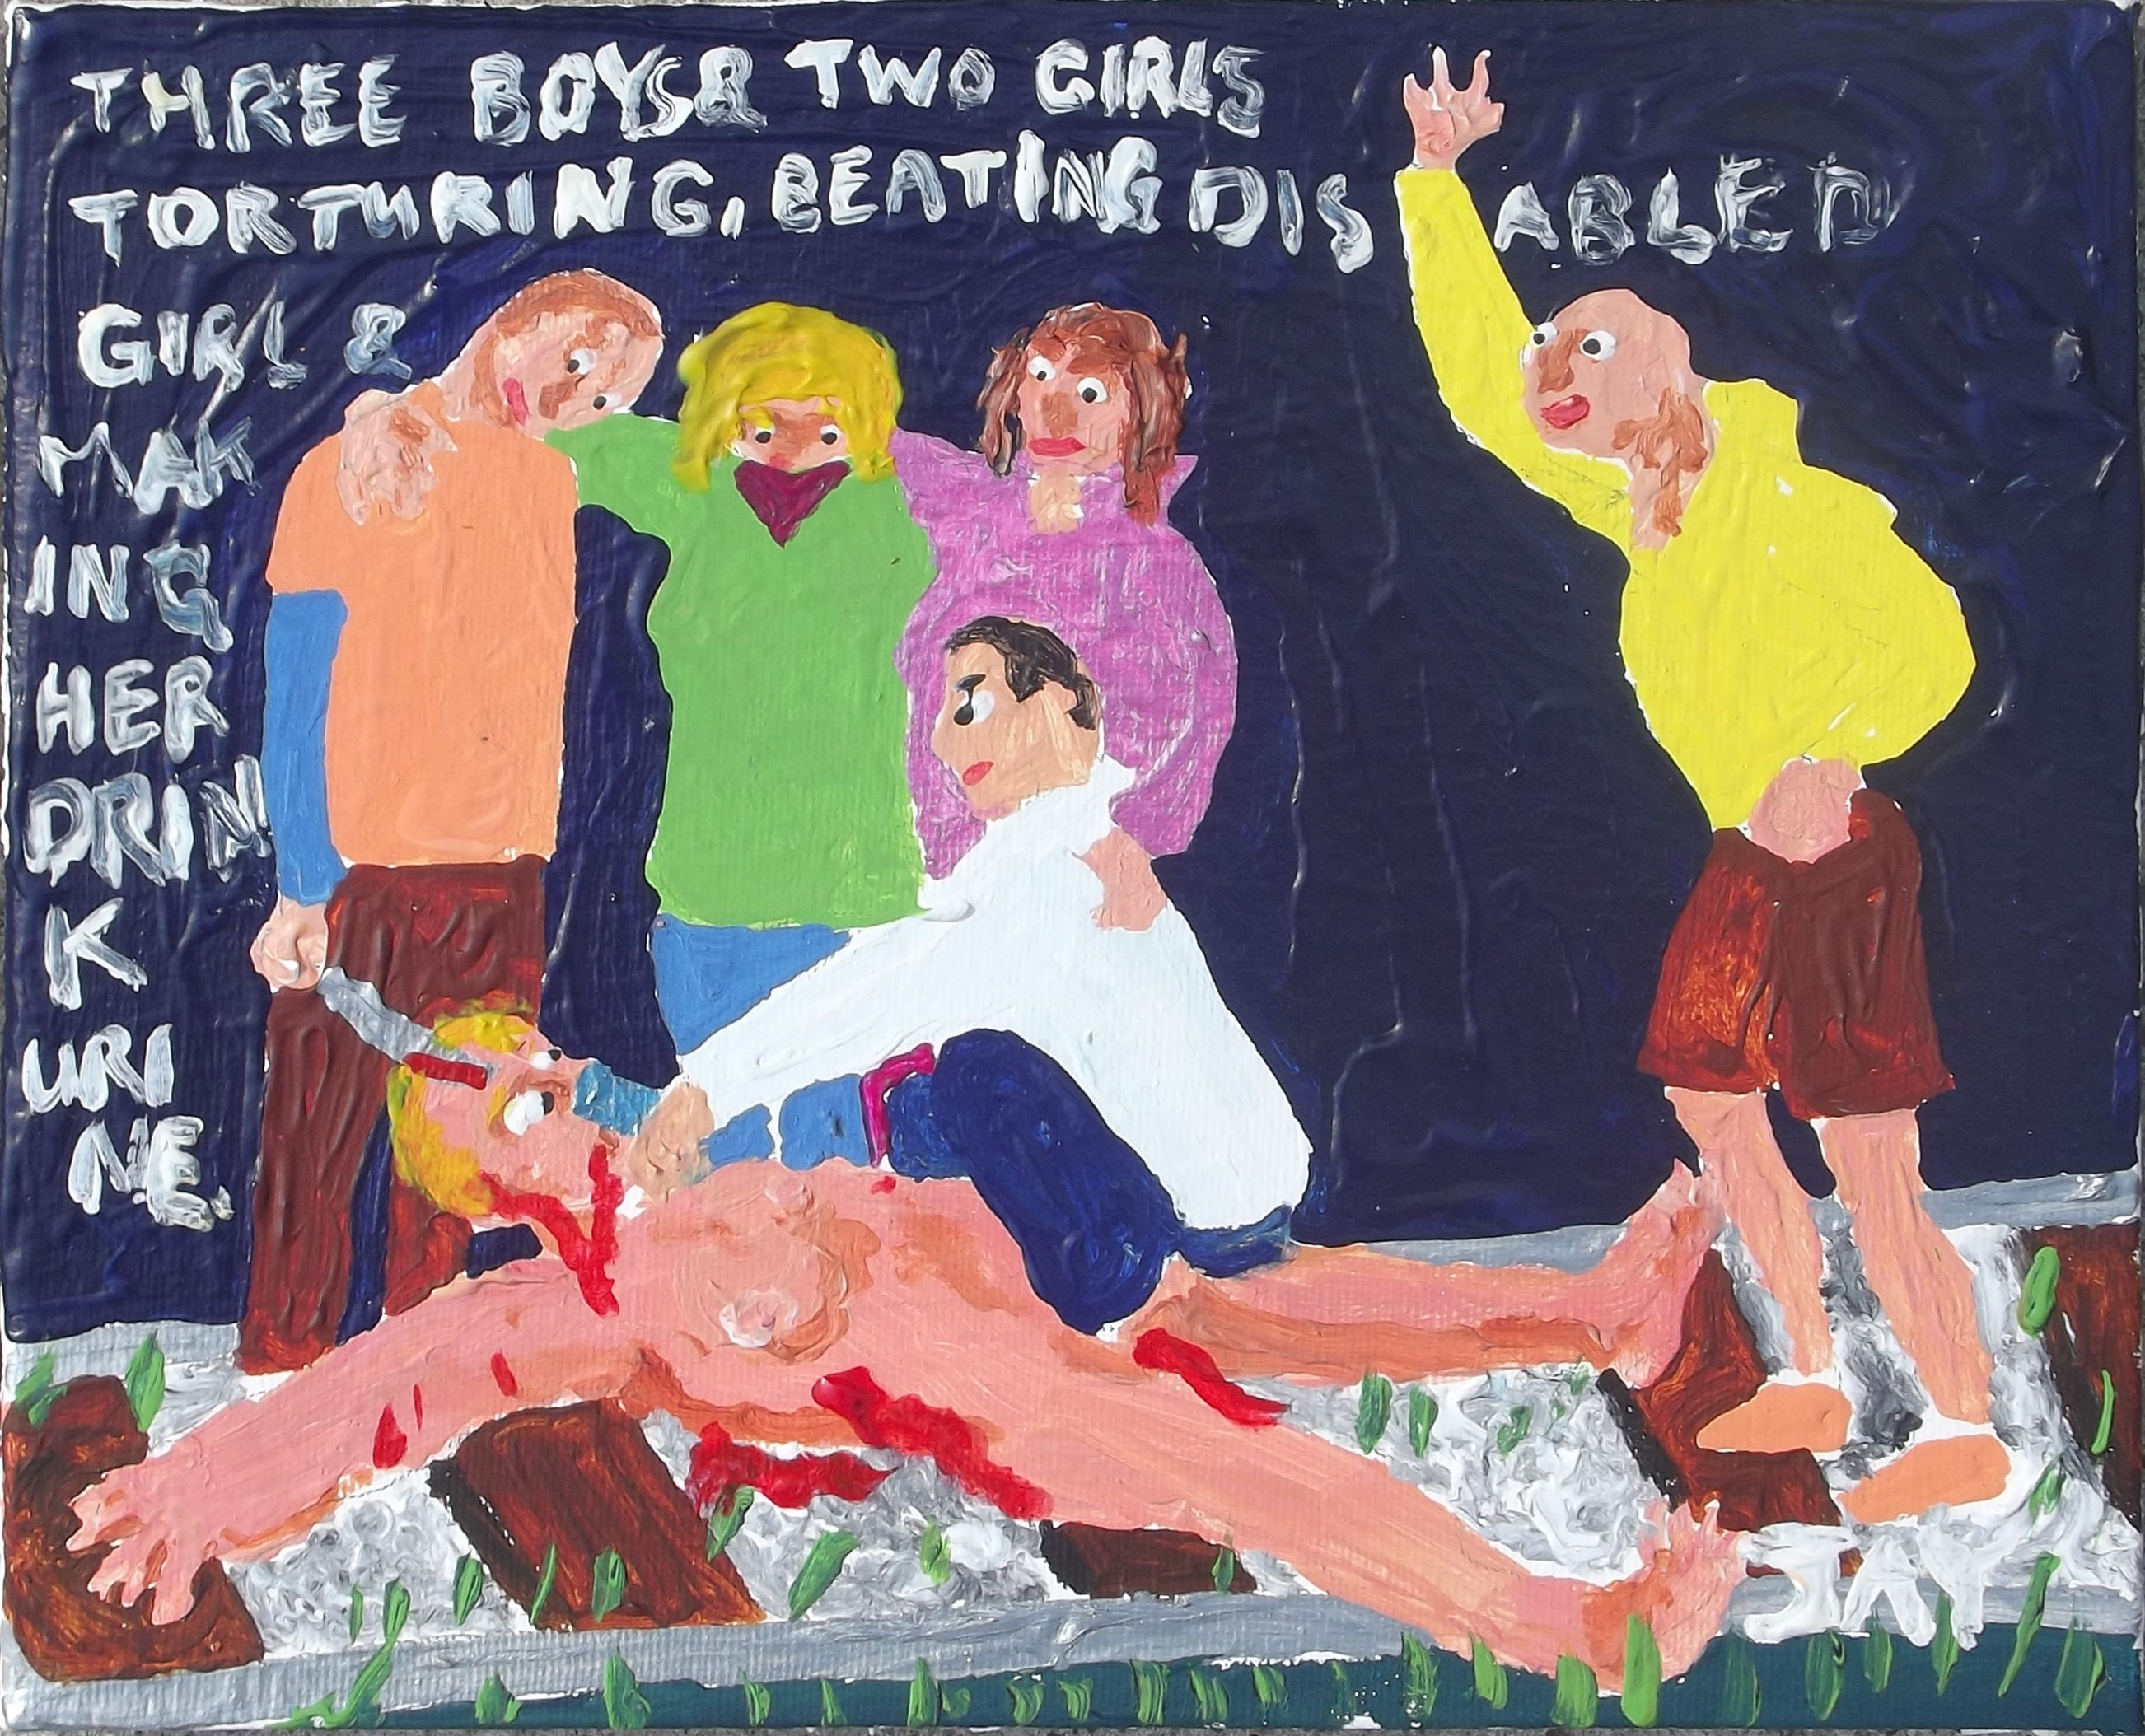 Three boys & two girls are torturing, beating disabled girl & making her drink urine., original Avant-Garde Acrylic Painting by Jay Rechsteiner